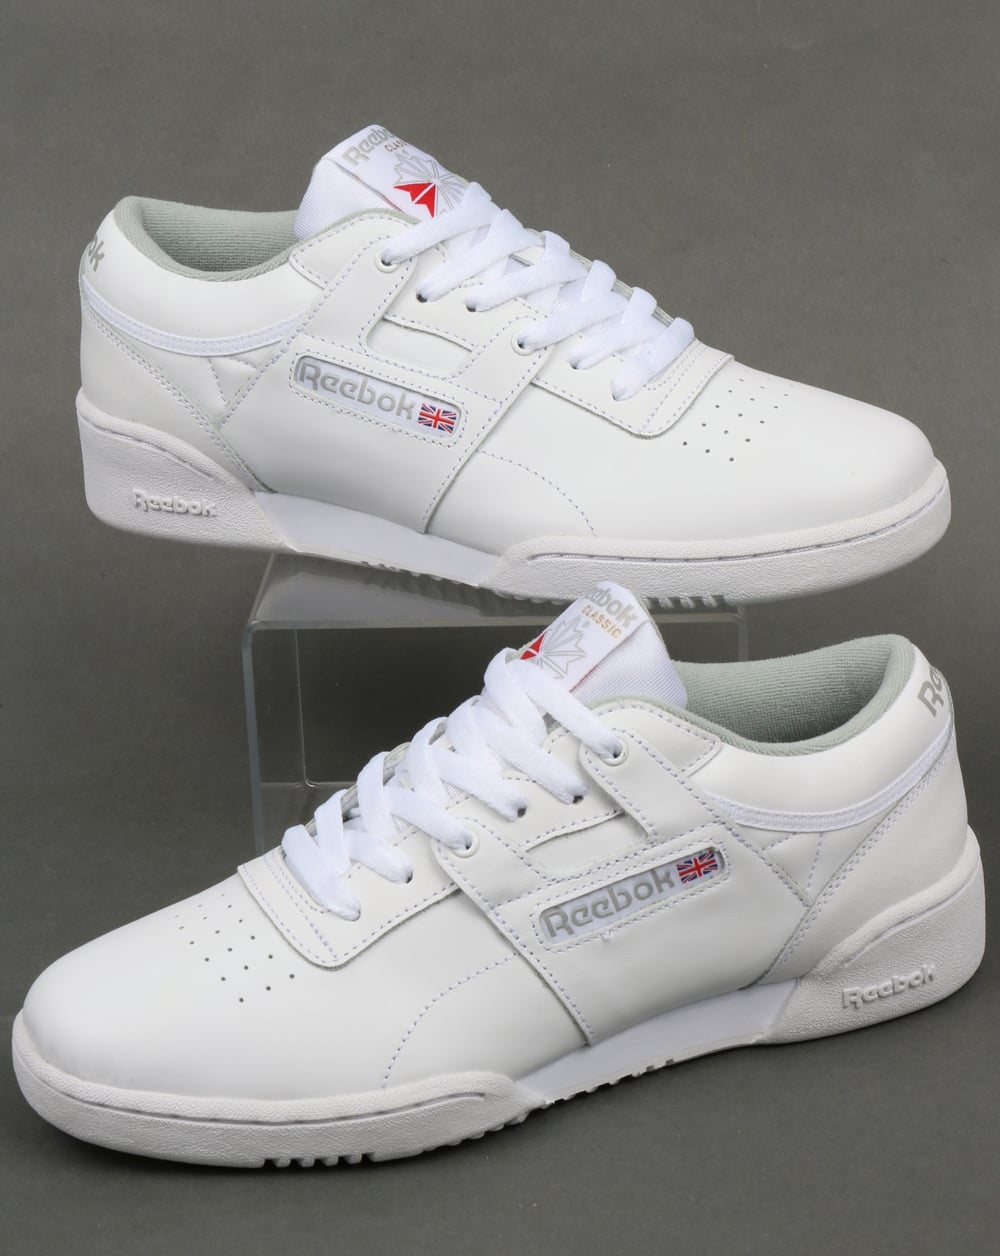 95a6a499b20d0 Reebok Reebok Workout Low Trainers White Grey